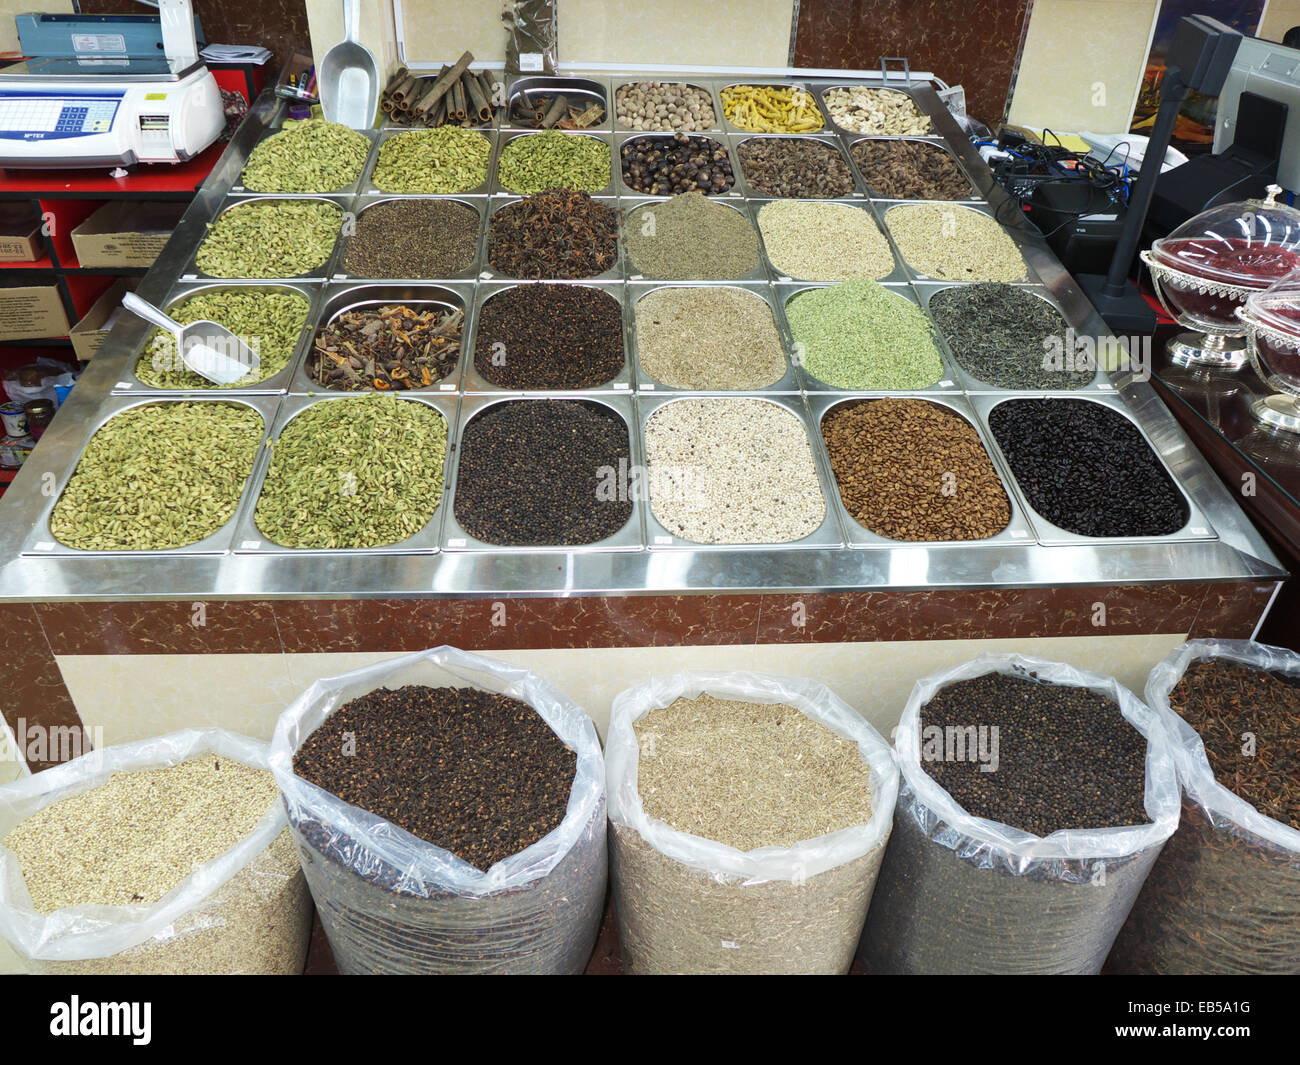 UAE Dubai Deira Old town herbs and nuts sale in supermarket